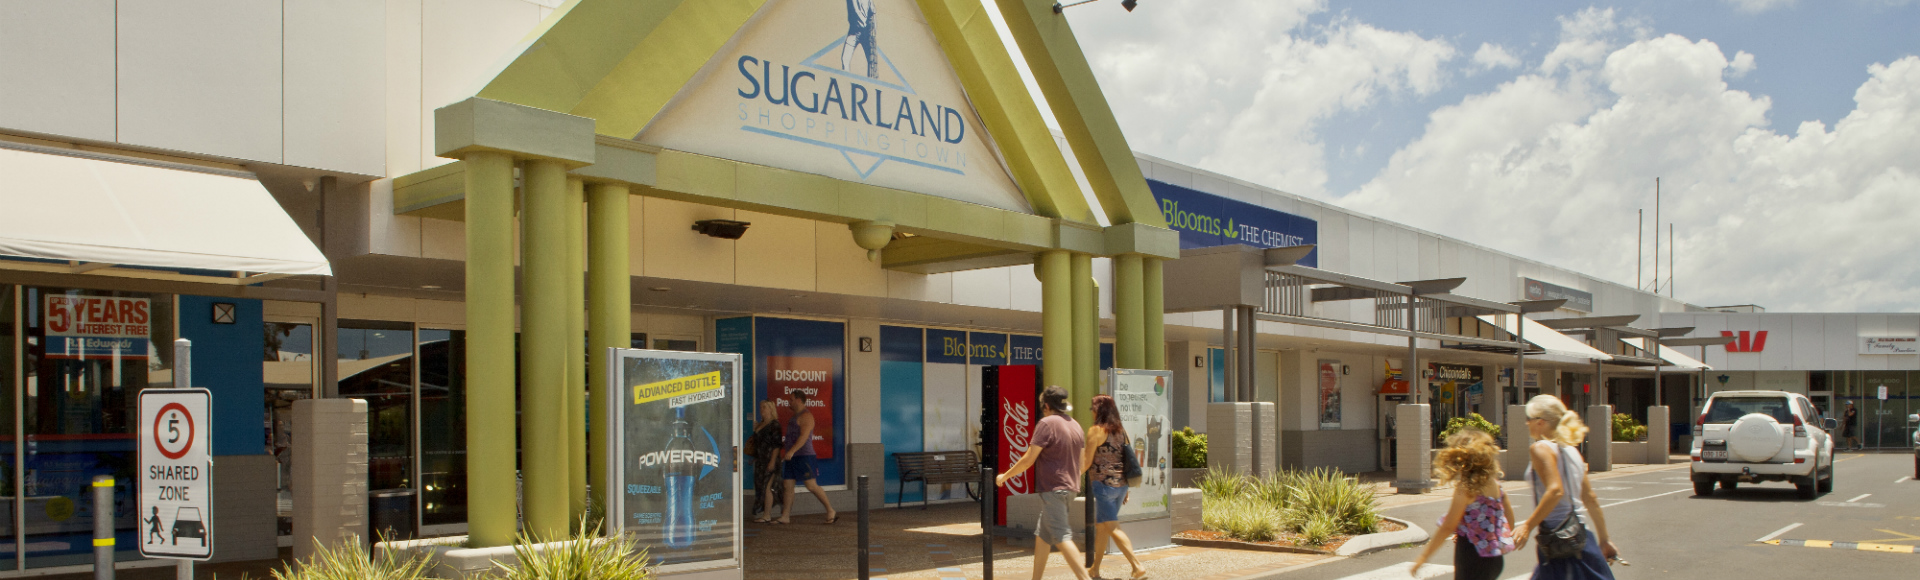 Bundaberg Main Entrance to Shopping Centre 1920x580px